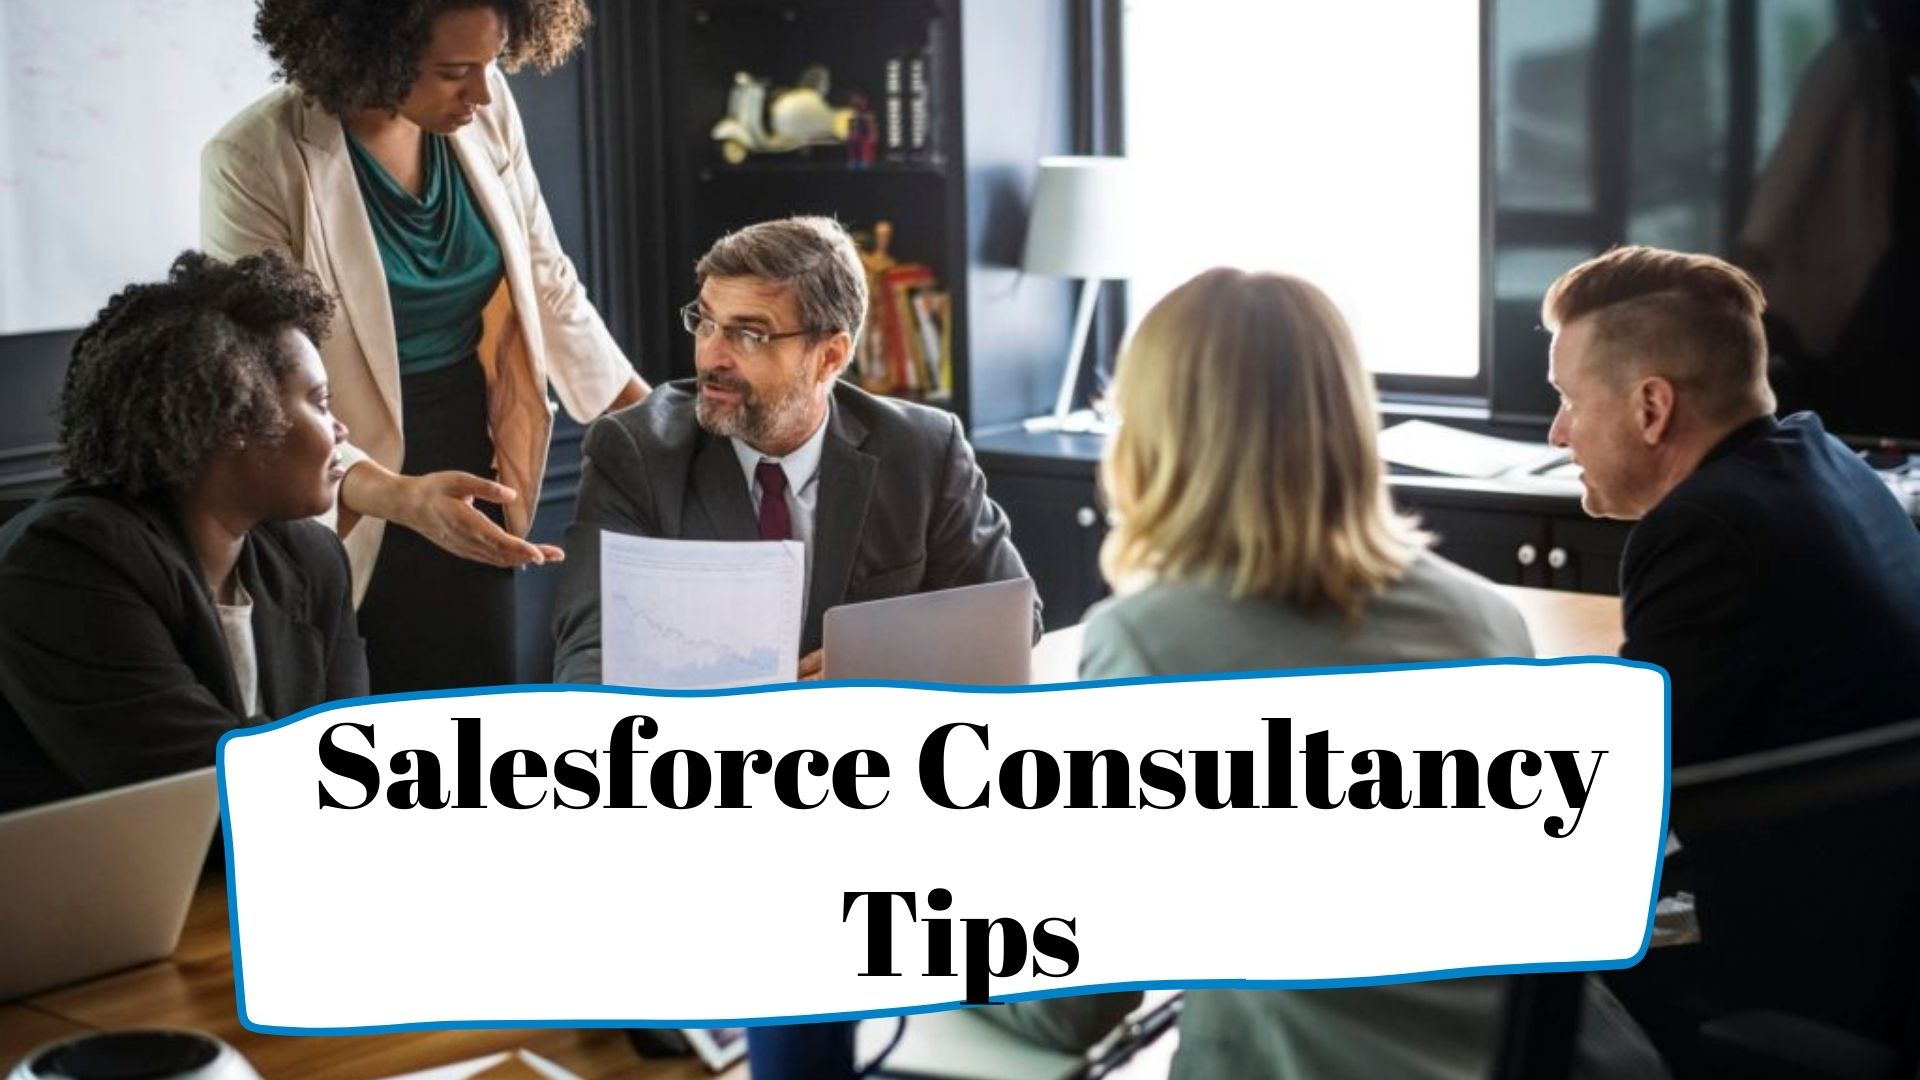 Steps to Form a Successful Salesforce Consultancy